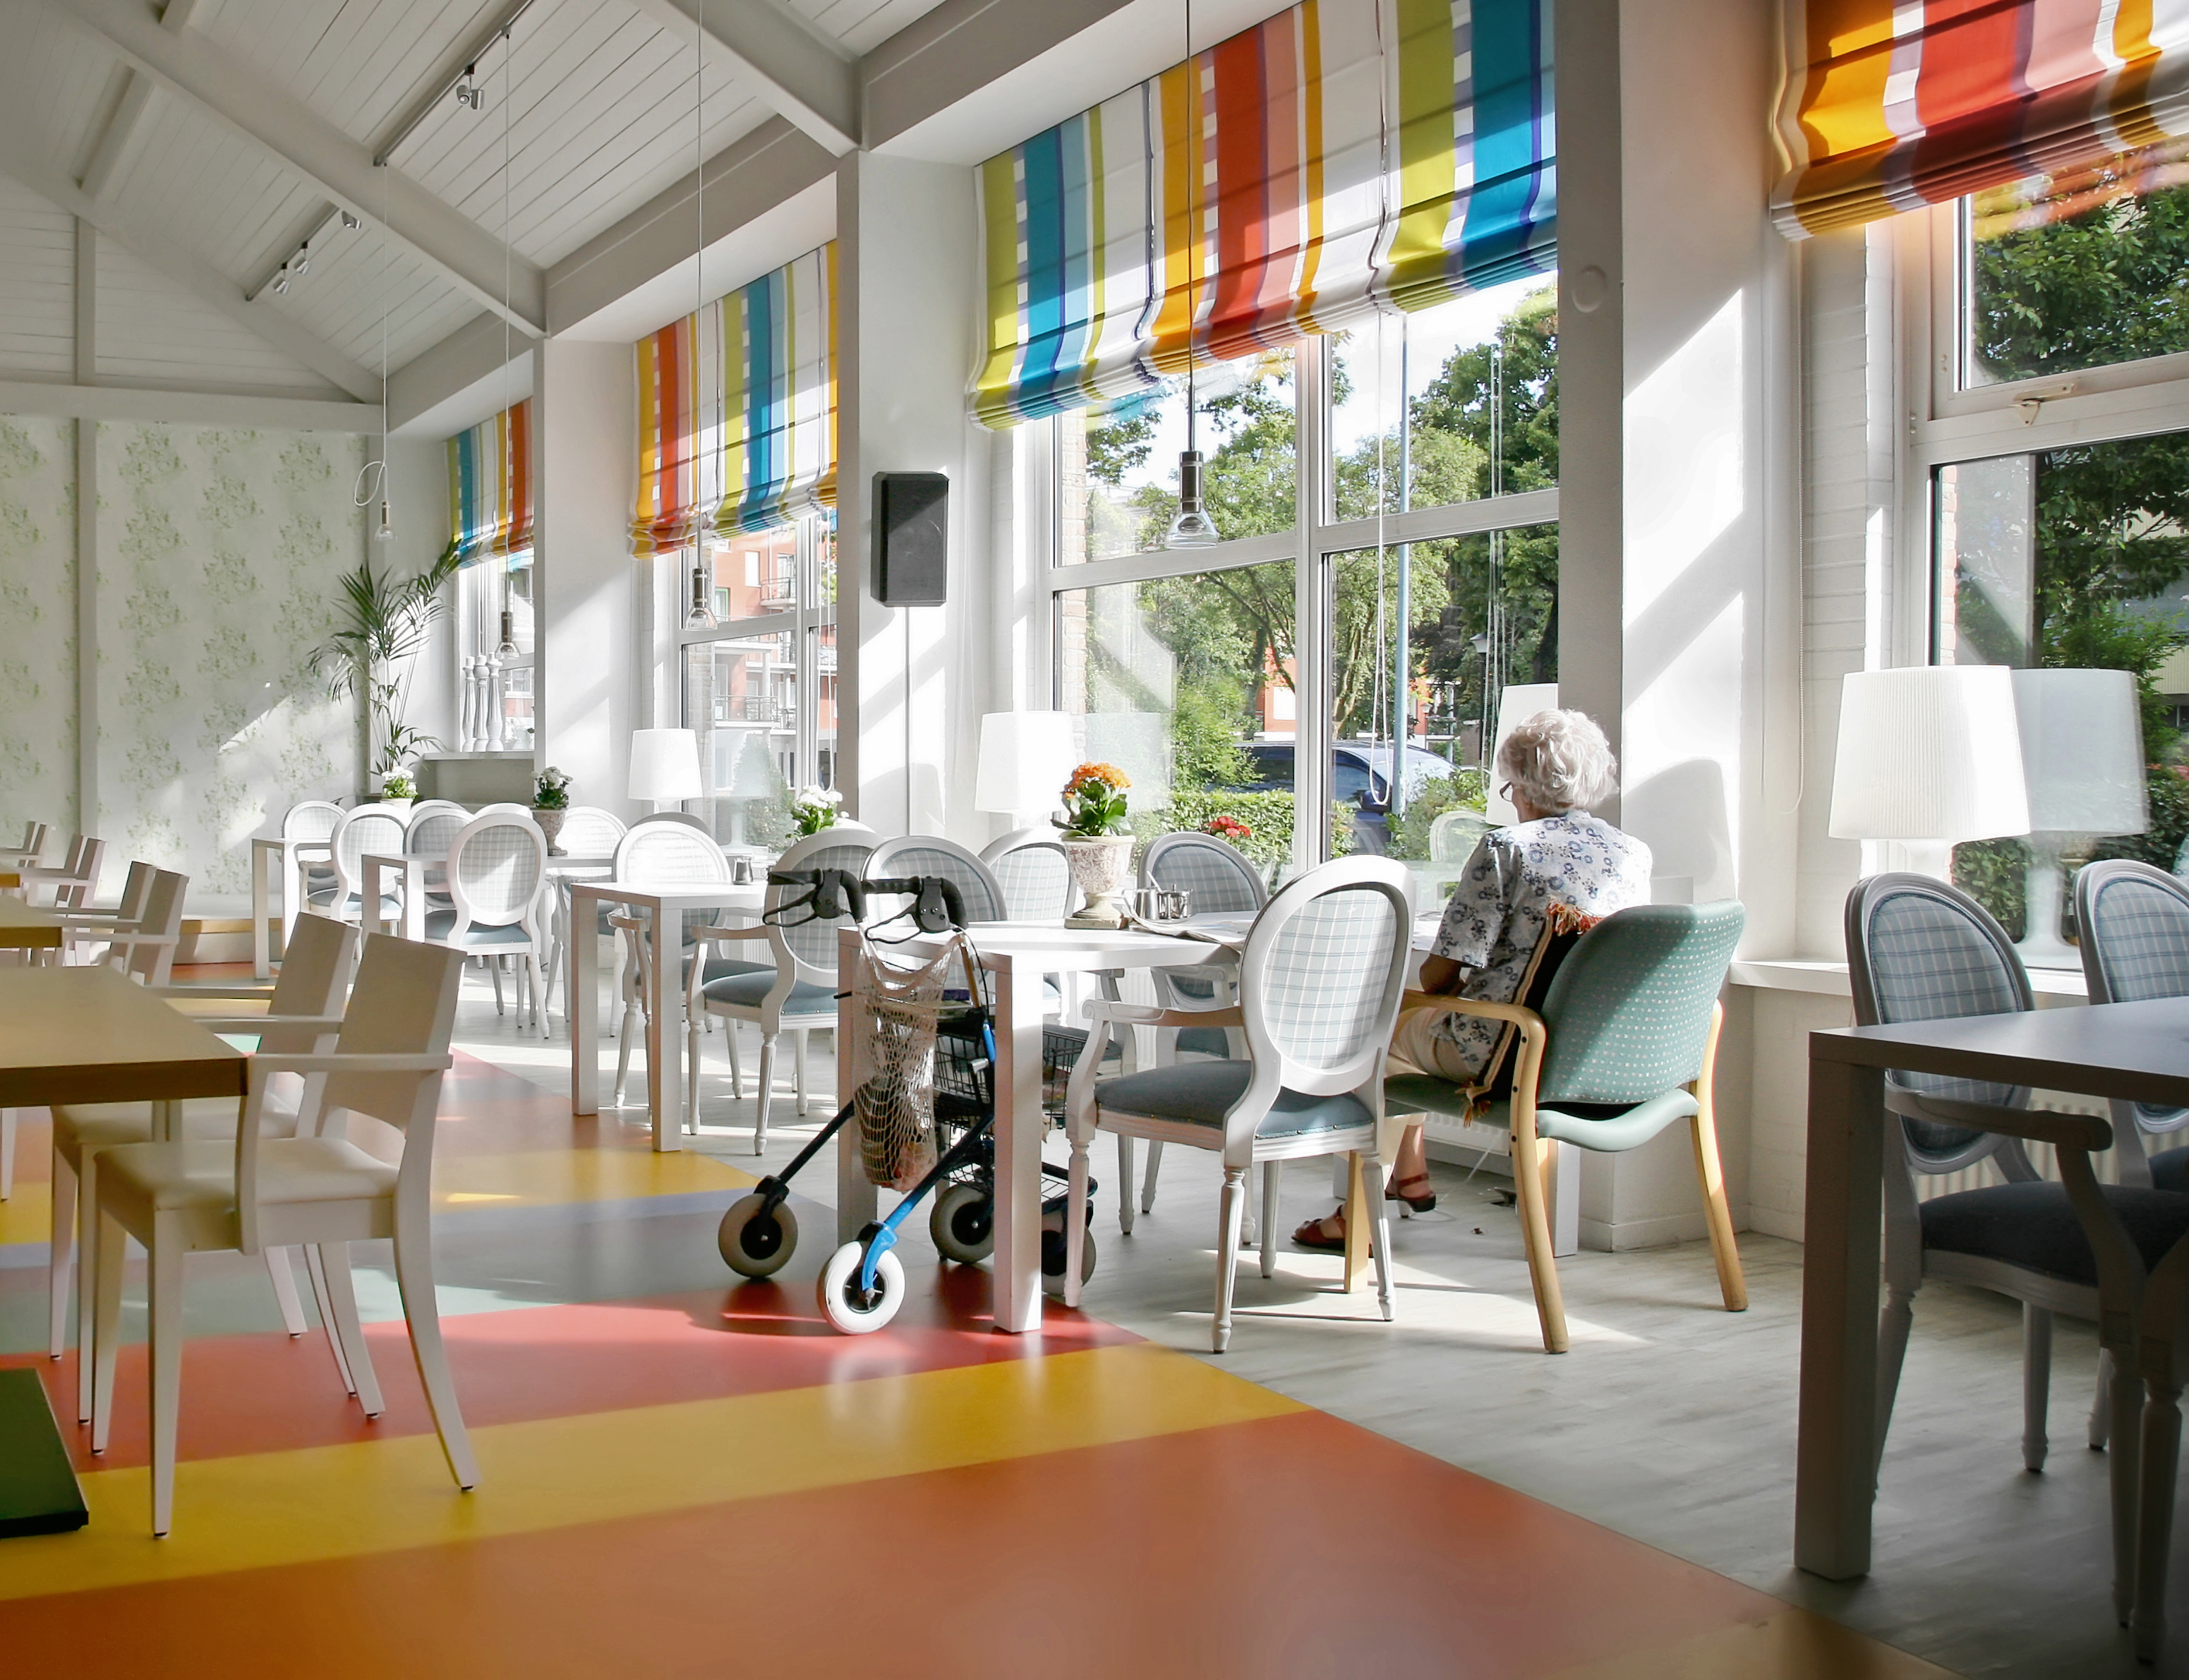 An older women site alone at a table in a colorful, sunlit room. Brightly patterned curtains hang above the windows.